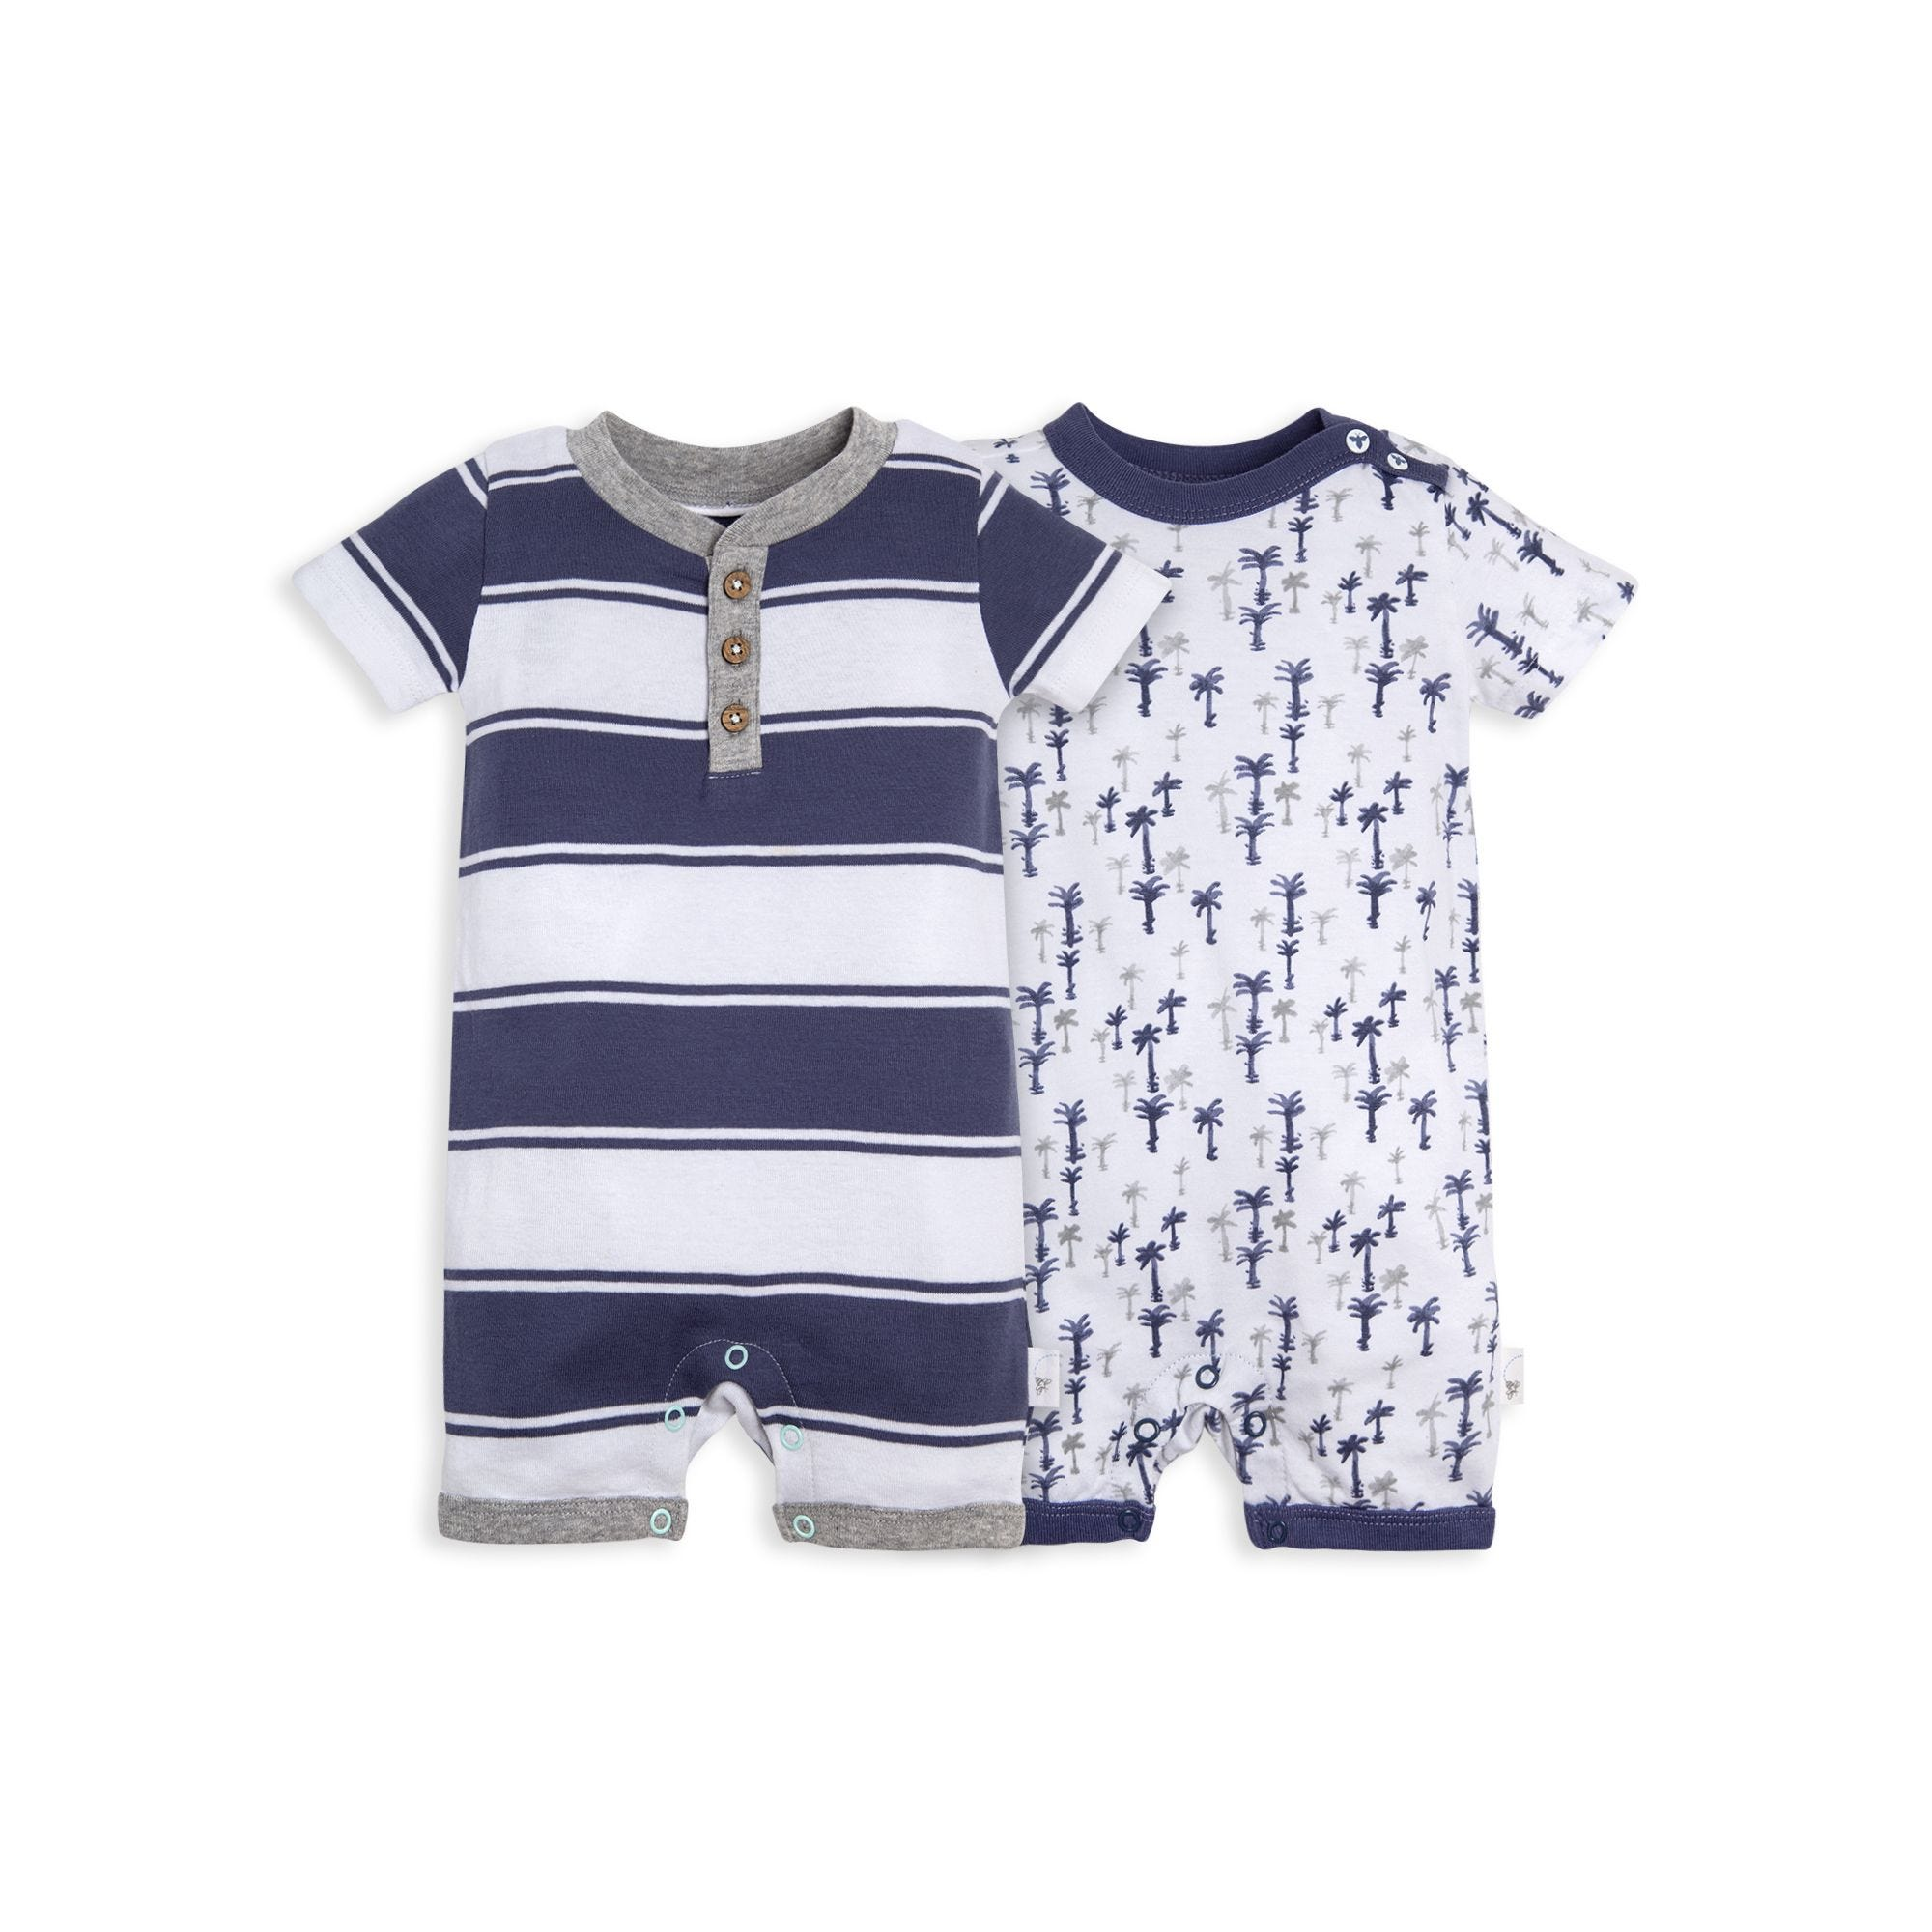 d3eecac22 Breezy Palm Tree Print and Stripe Organic Baby Romper 2 Pack